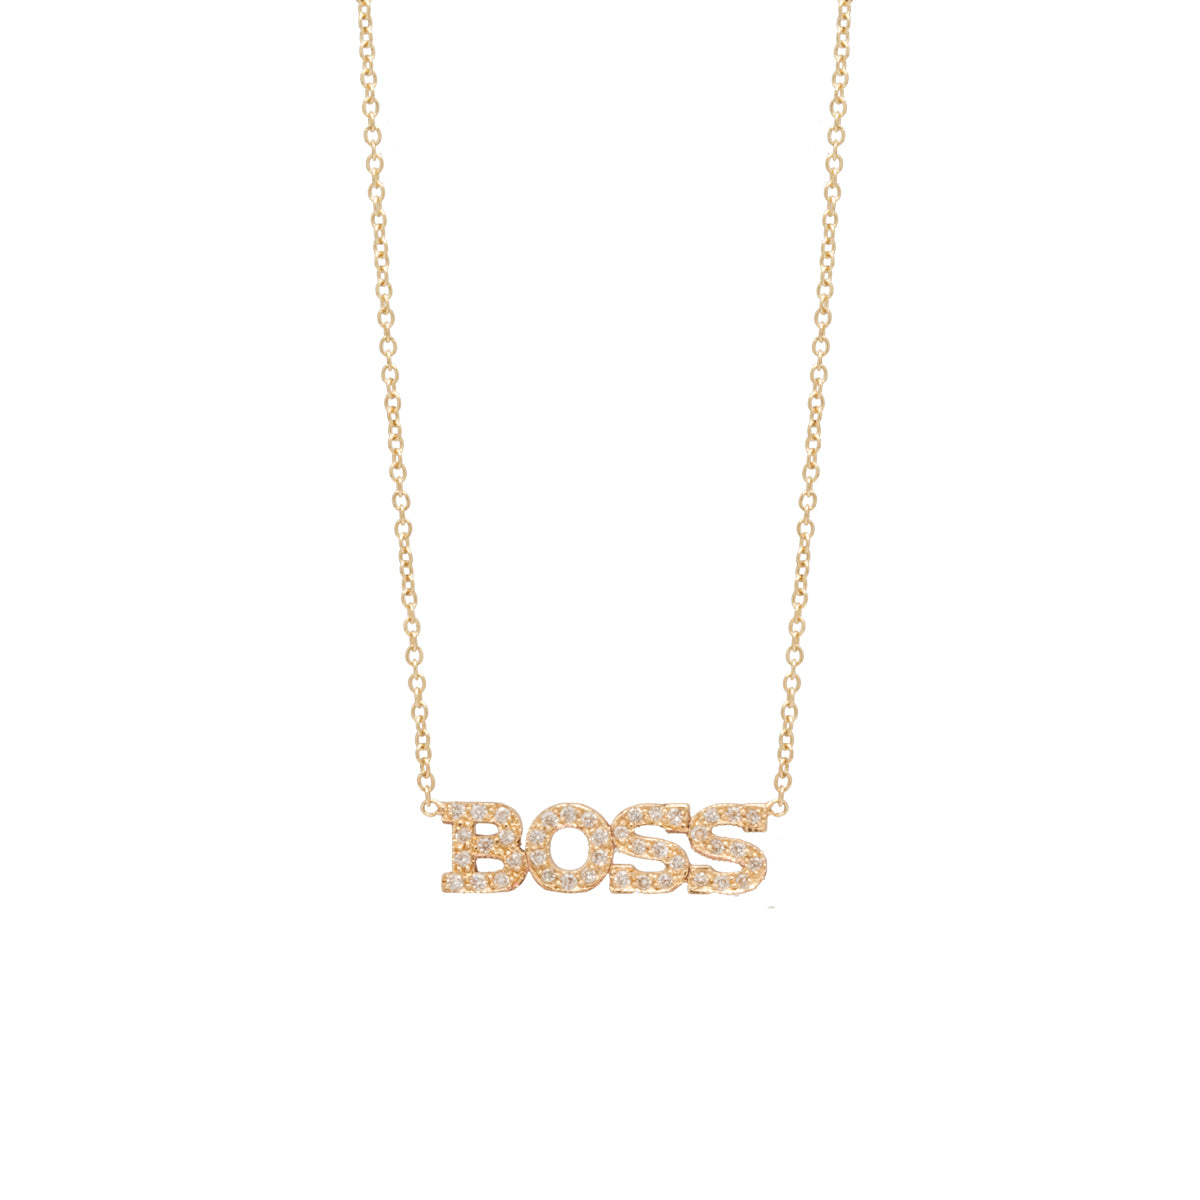 14k 4 pave letter necklace